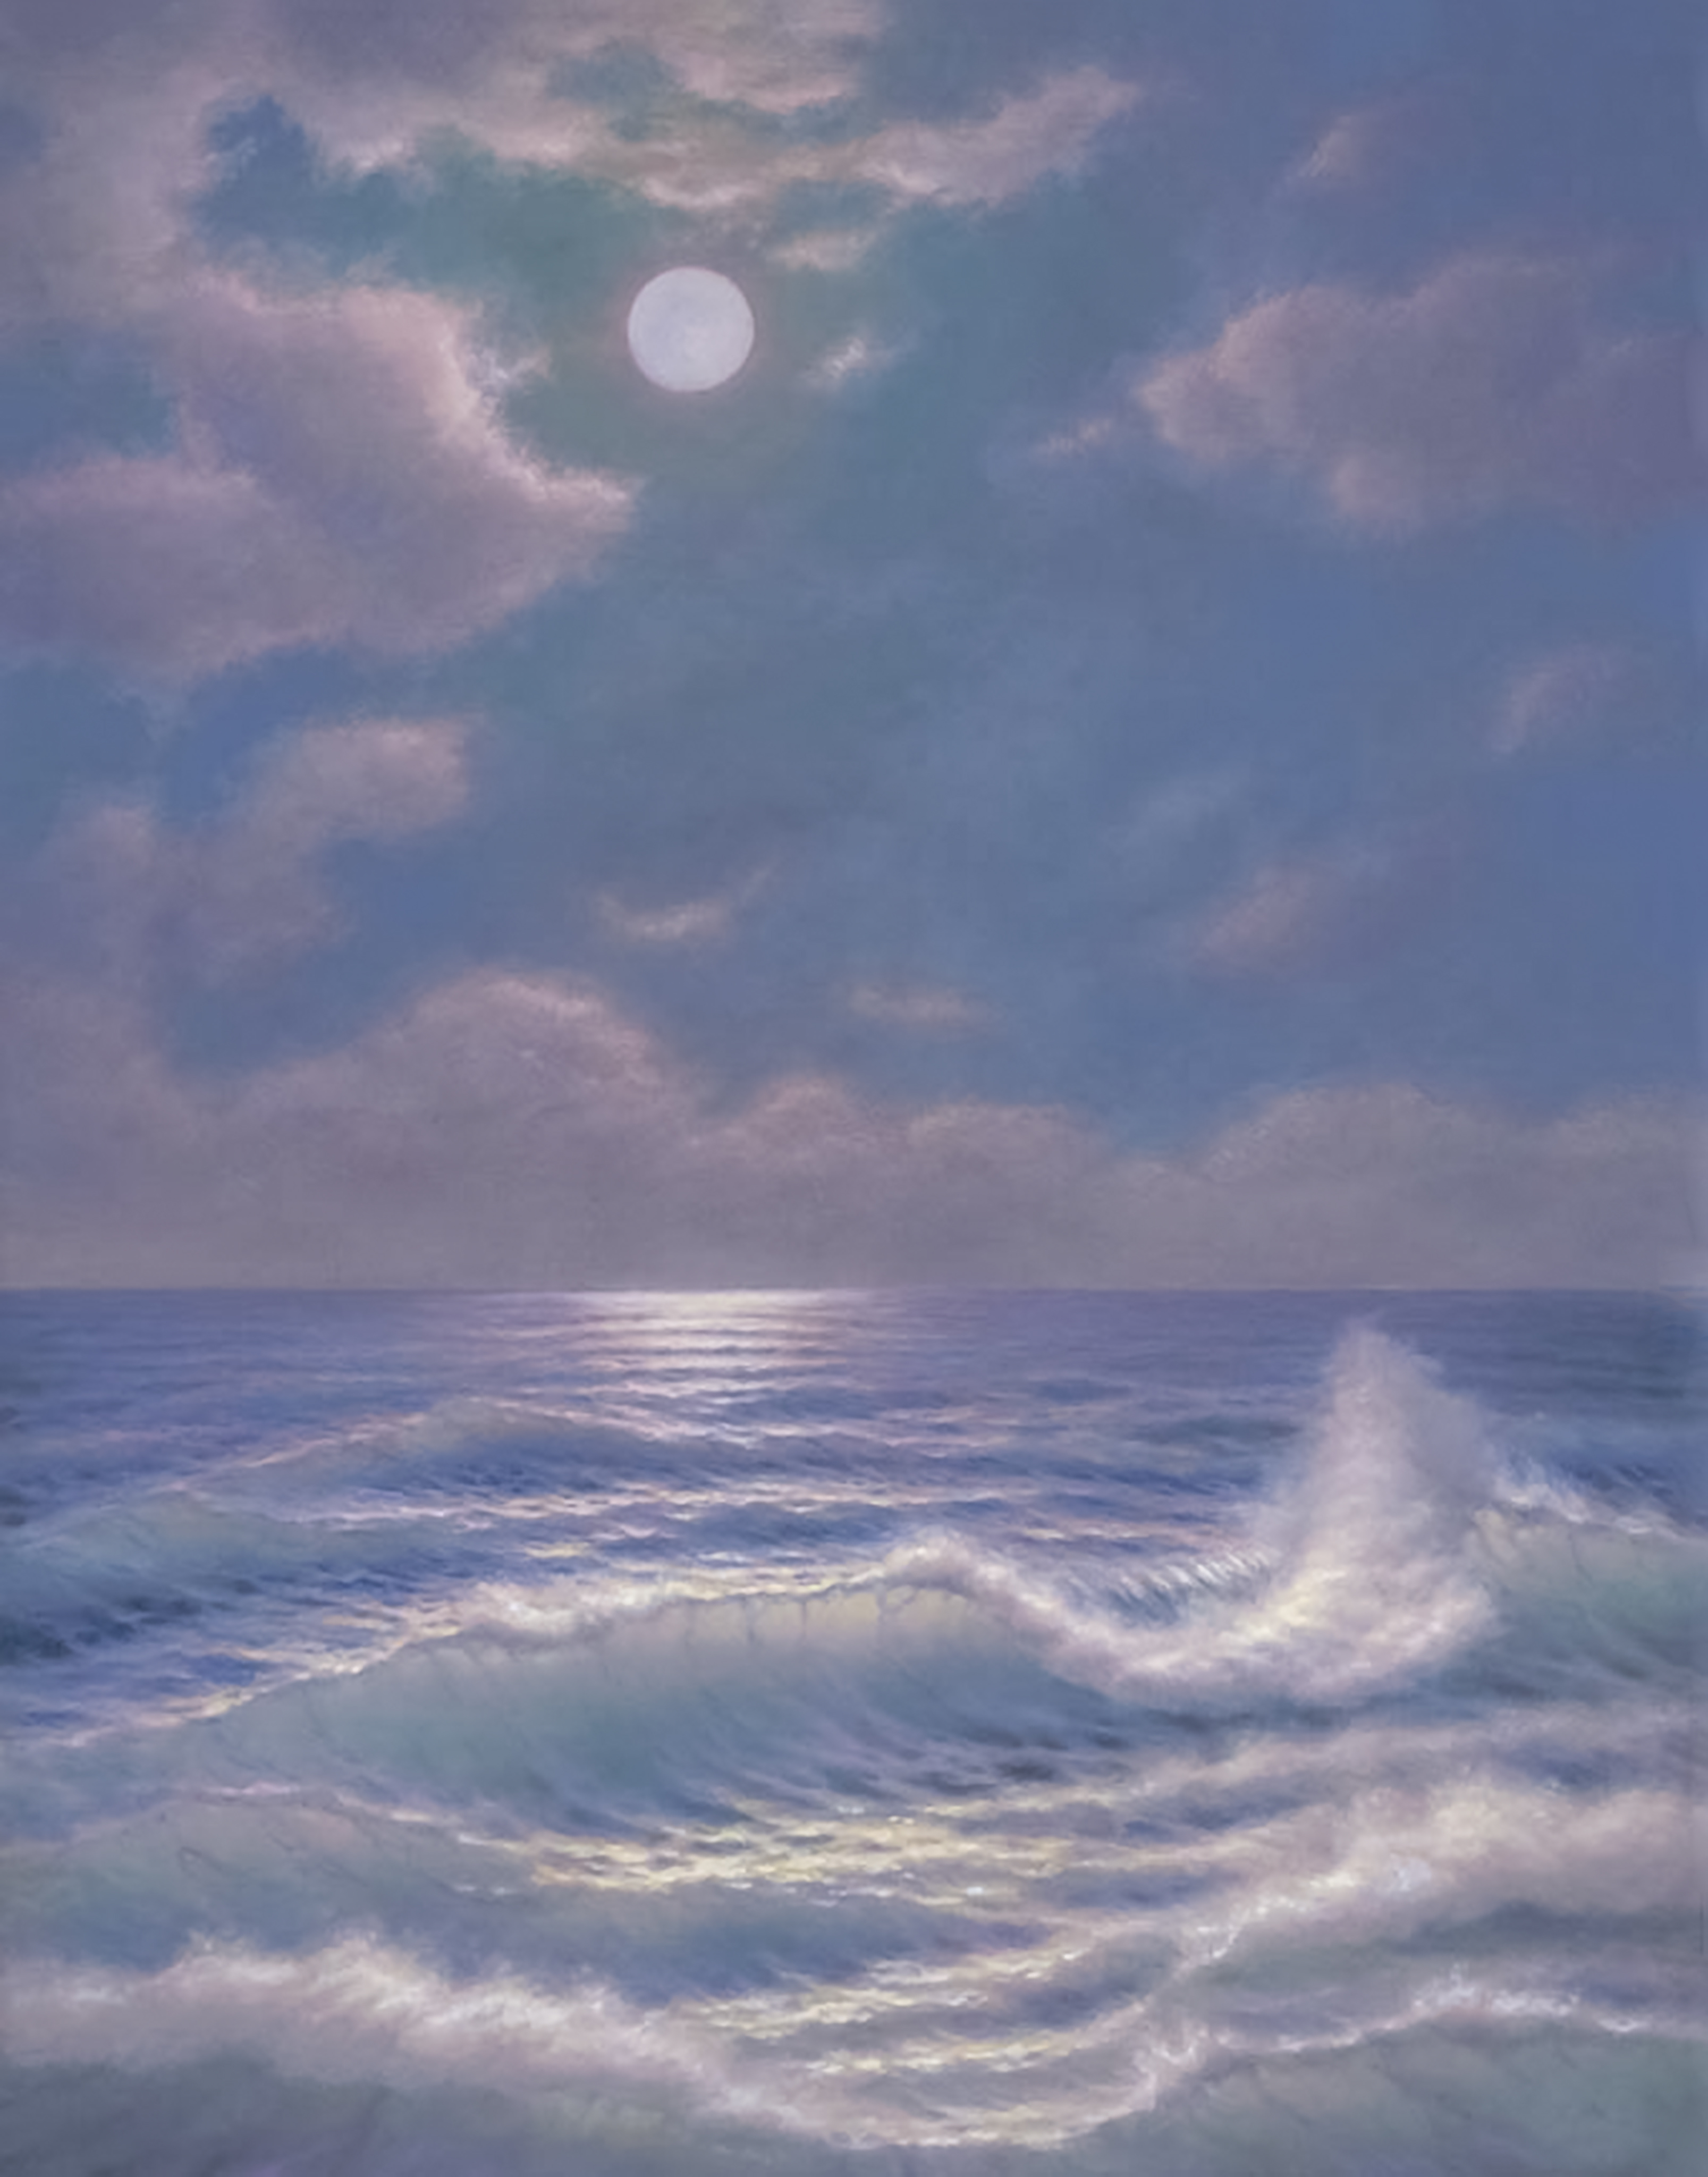 Moonlight Sea Breeze30x2499